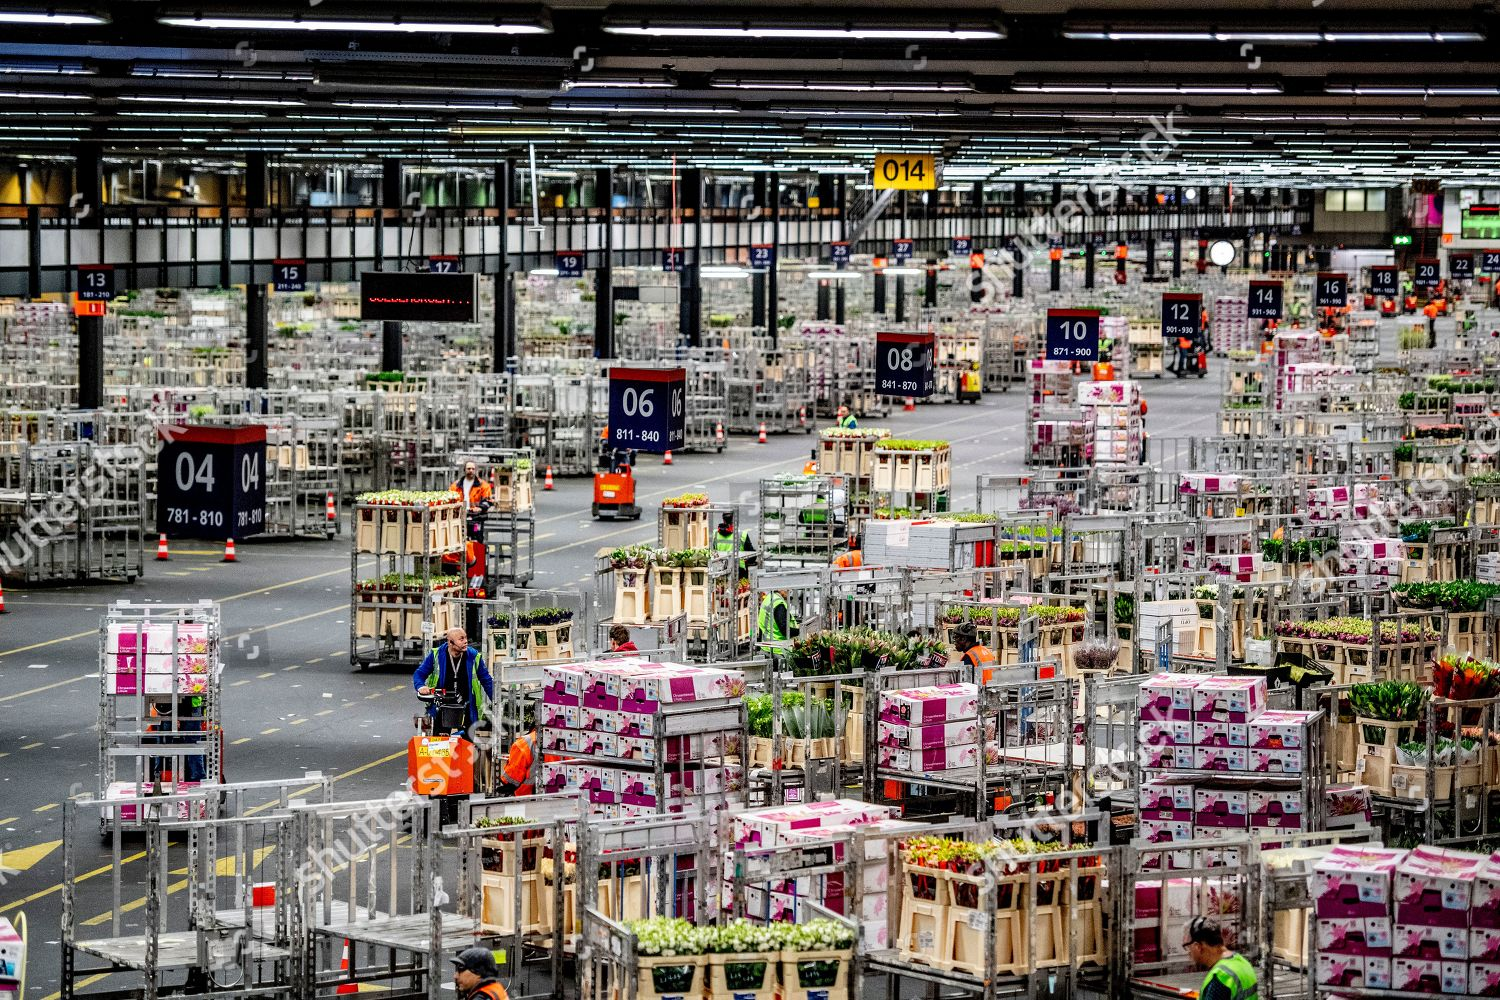 Royal Floraholland flower auction Editorial Stock Photo - Stock Image | Shutterstock